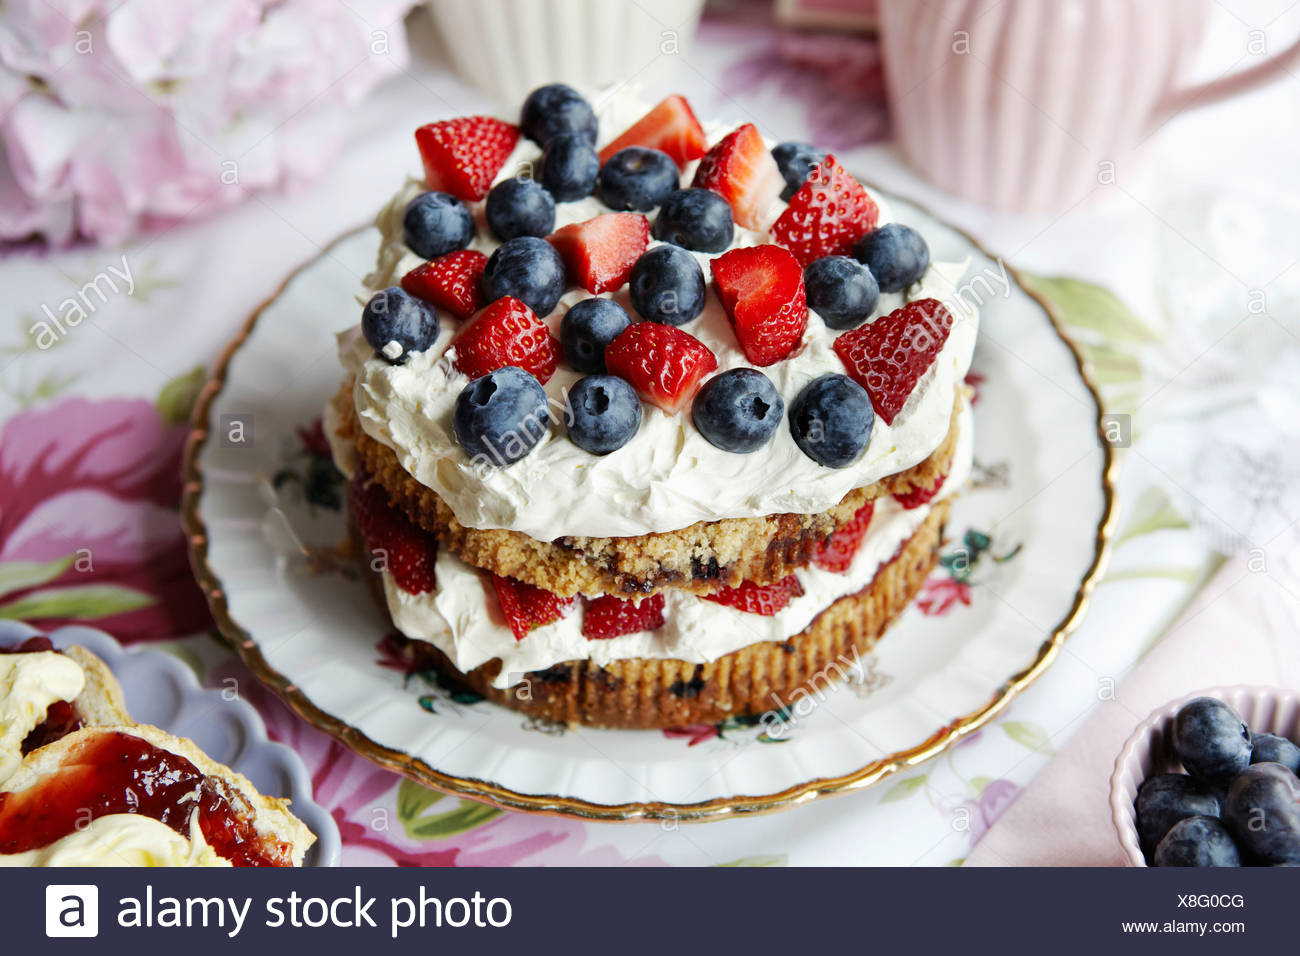 Plate of fruit and cream cake - Stock Image